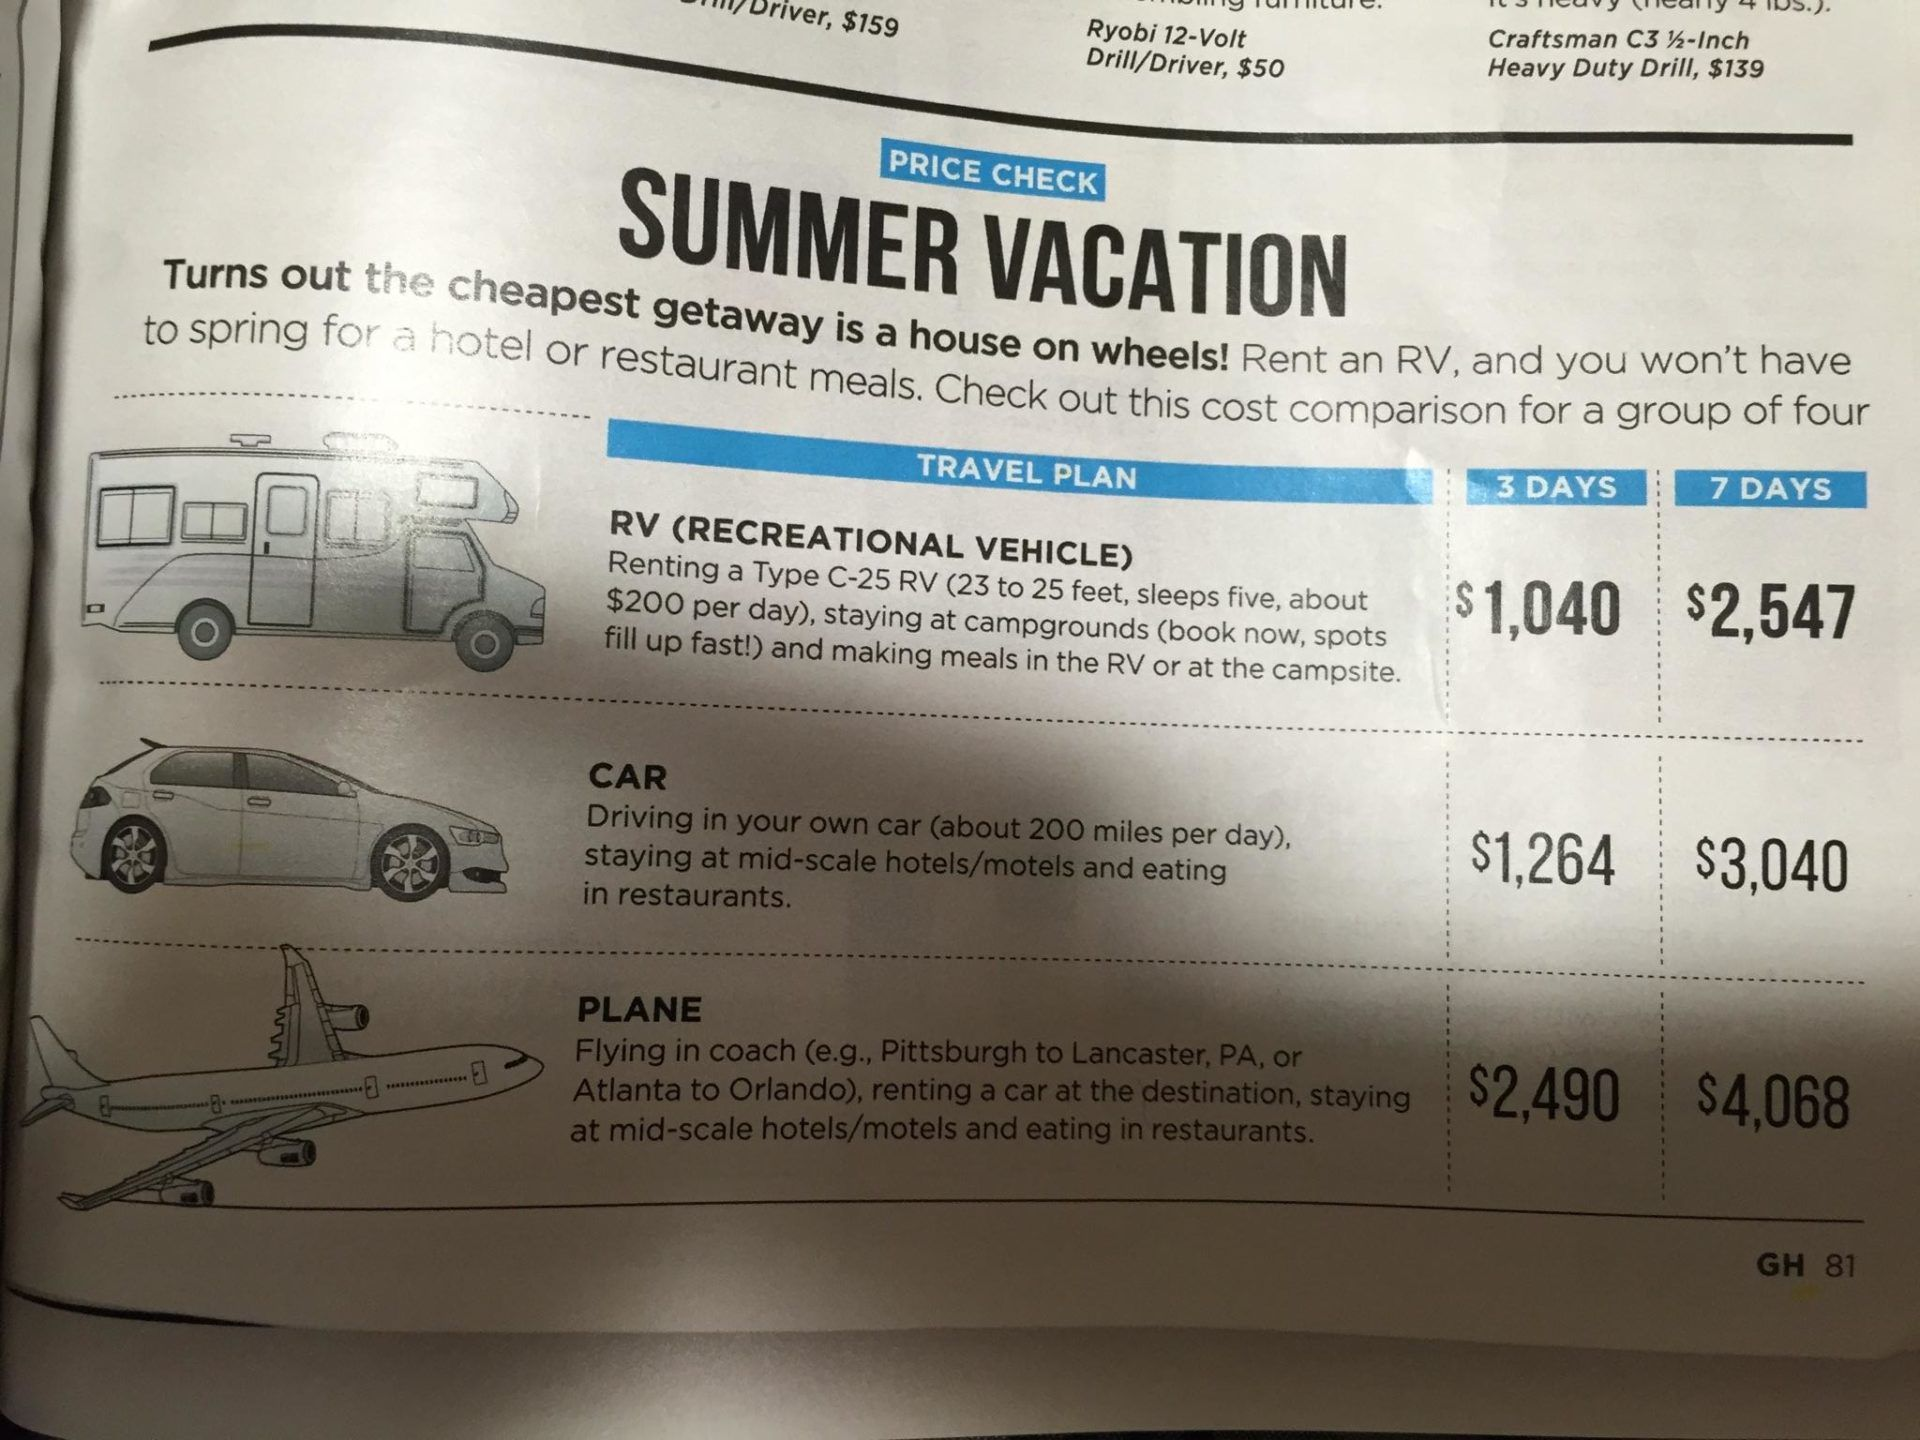 Your Most Affordable Summer Vacation? Rent an RV!